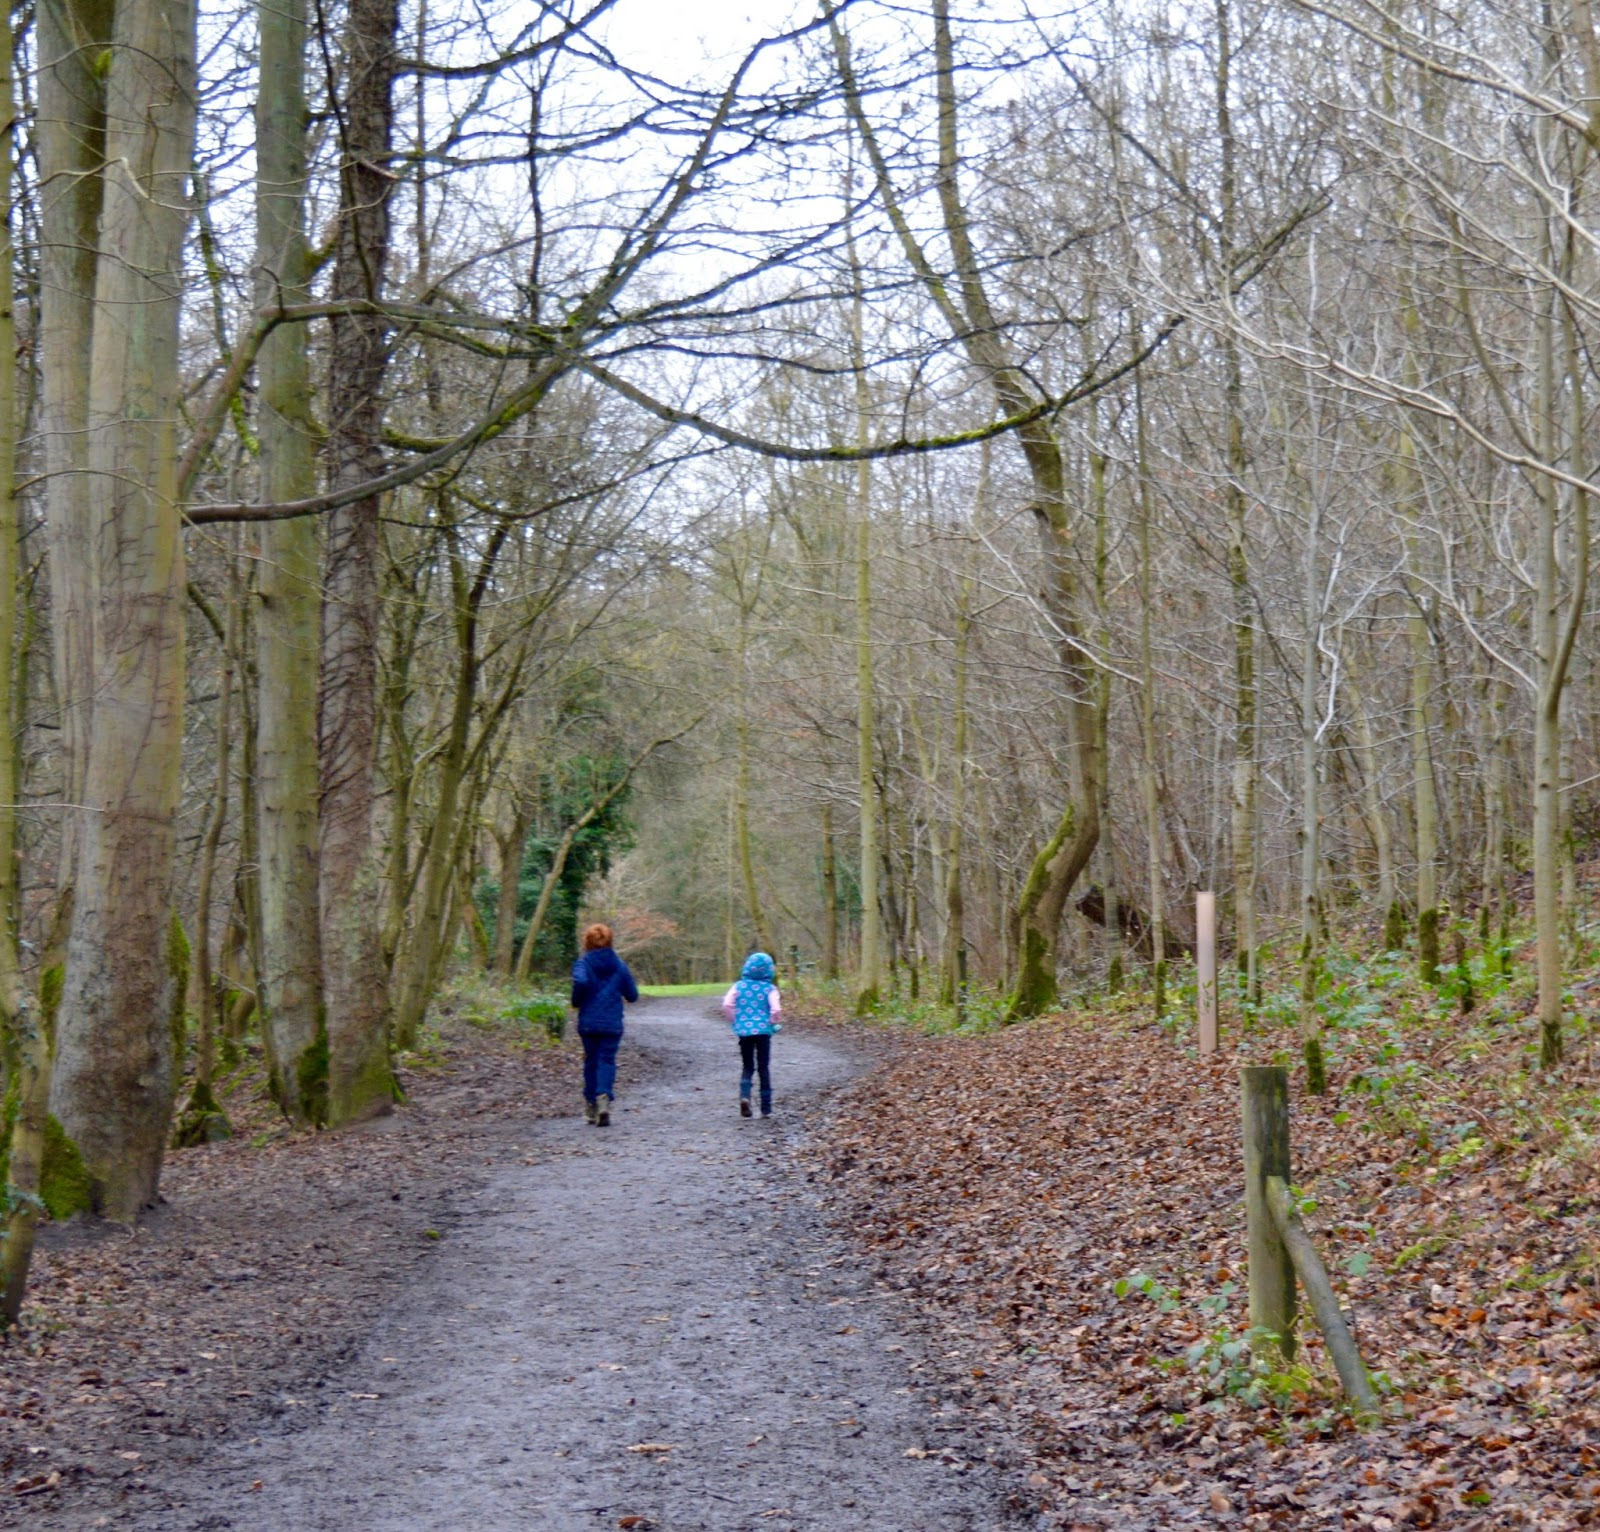 Our Visit to Plessey Woods - A FREE day out in Northumberland. It was very muddy and the perfect chance for Harry to put his GORE-TEX shoes through their paces - river path